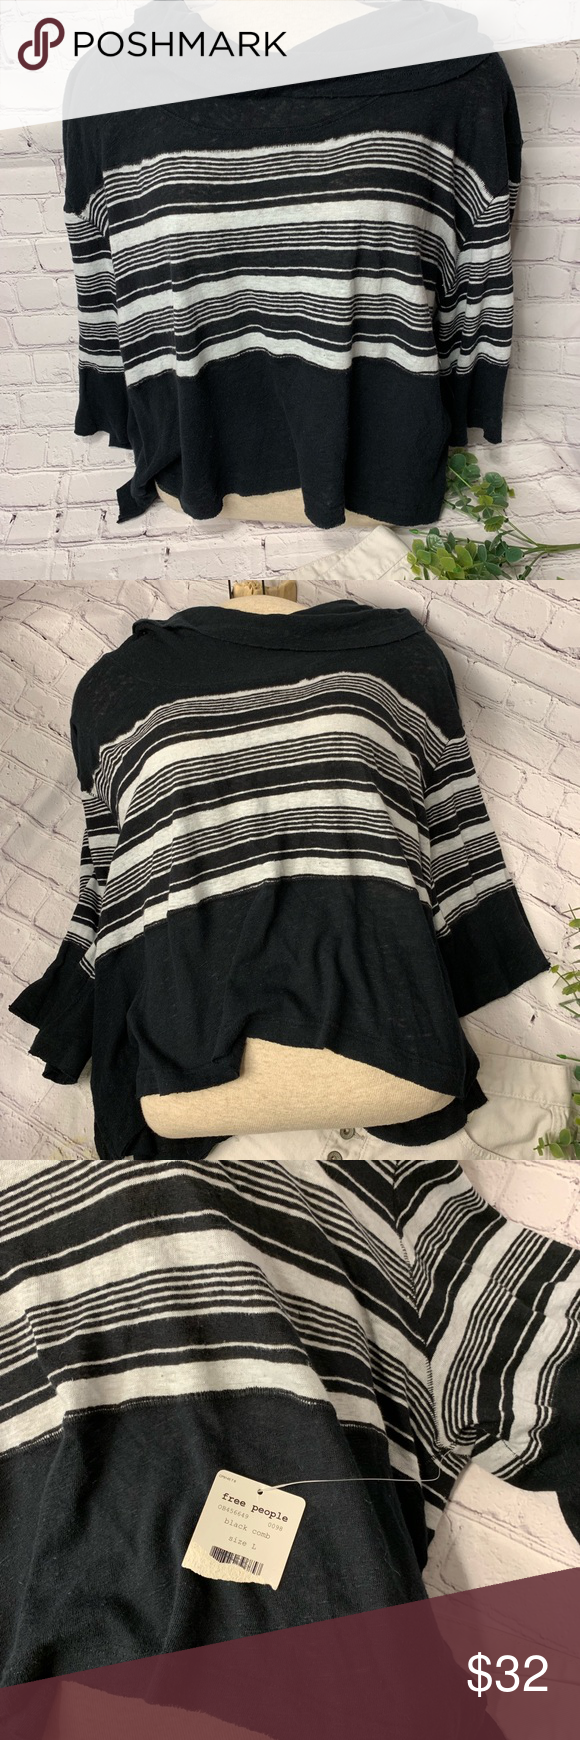 {Free People} Cowl Neck Crop Top | NWT | L {Free People} Cowl Neck Crop Top | NWT  Black/Cream Striped | Black Comb | We The Free Size Large  ***{Free People} Denim Cutoff Shorts available in separate listing!***  ᗪOᑎ'T ᒪIKᗴ Tᕼᗴ ᑭᖇIᑕᗴ?  ᔕᑌᗷᗰIT ᗩᑎ Oᖴᖴᗴᖇ!! Free People Tops #denimcutoffshorts